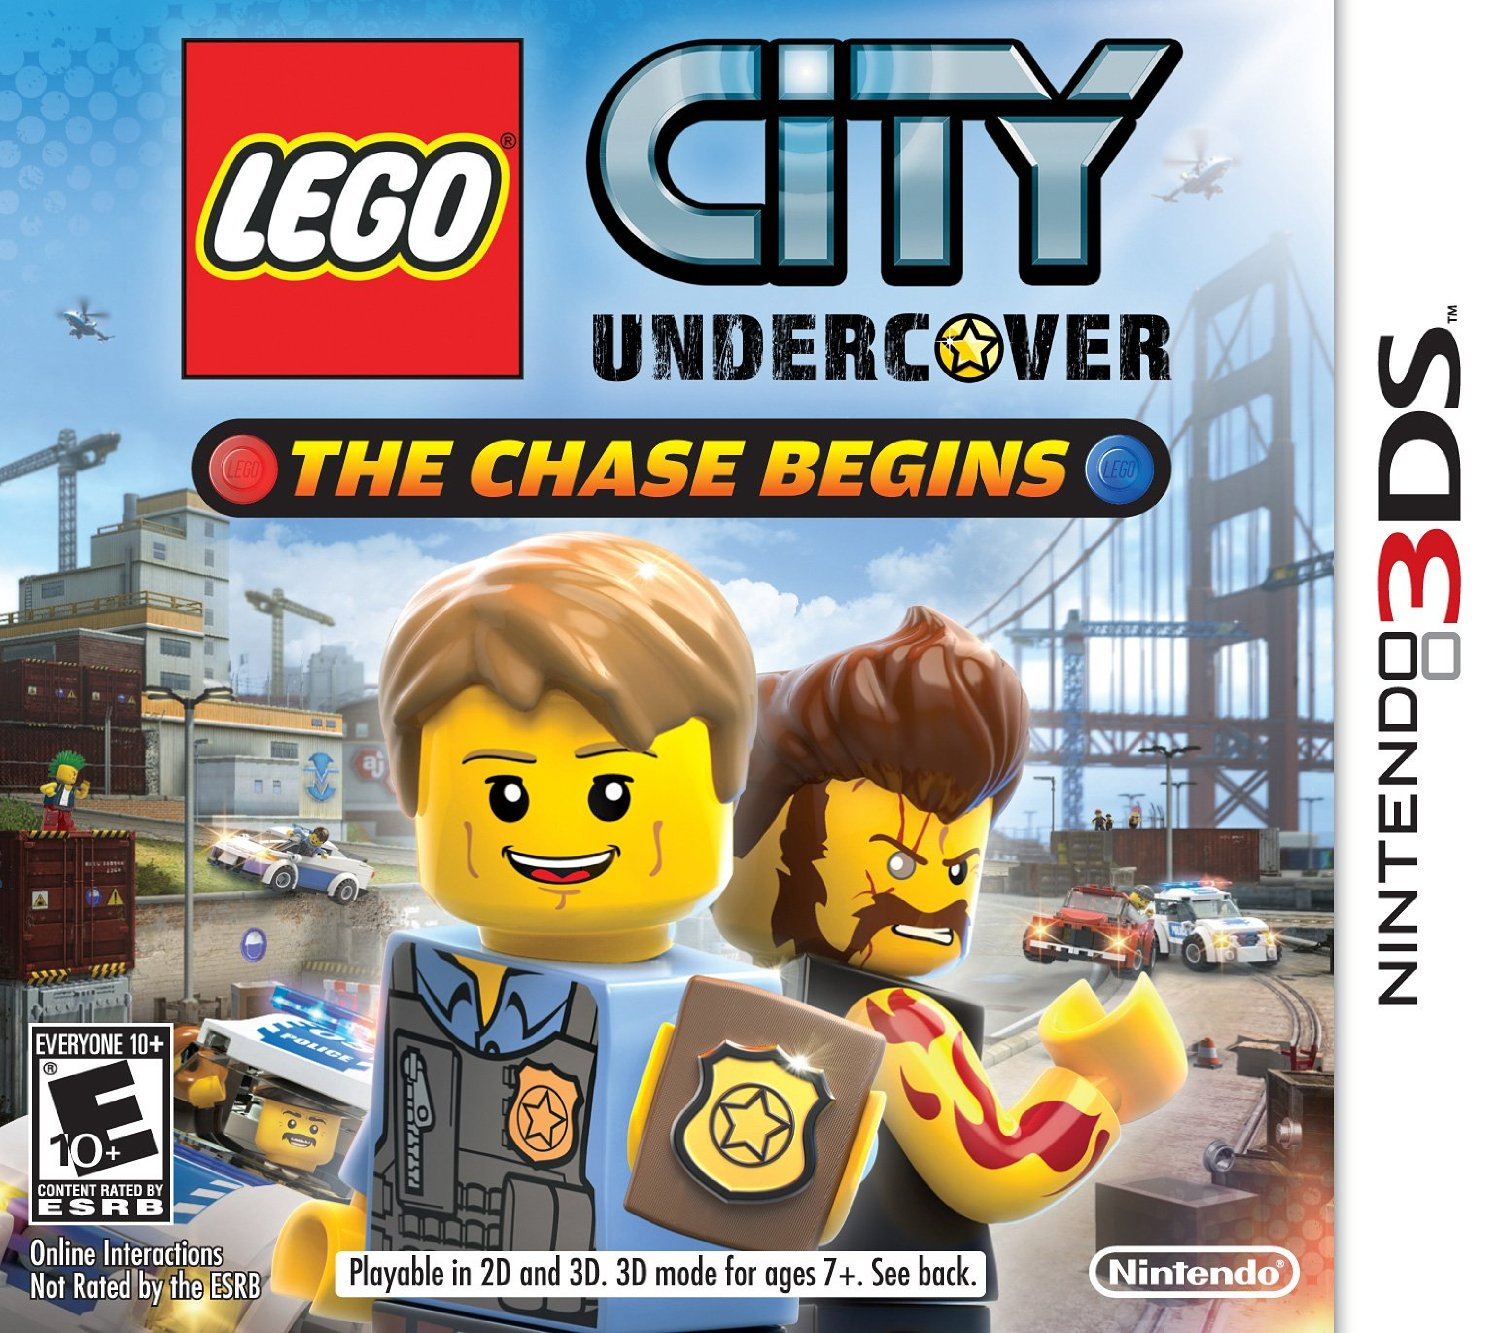 http://img1.wikia.nocookie.net/__cb20130215023341/nintendo3ds/images/4/41/Lego_City_Undercover_The_Chase_Begins_box_art.jpg